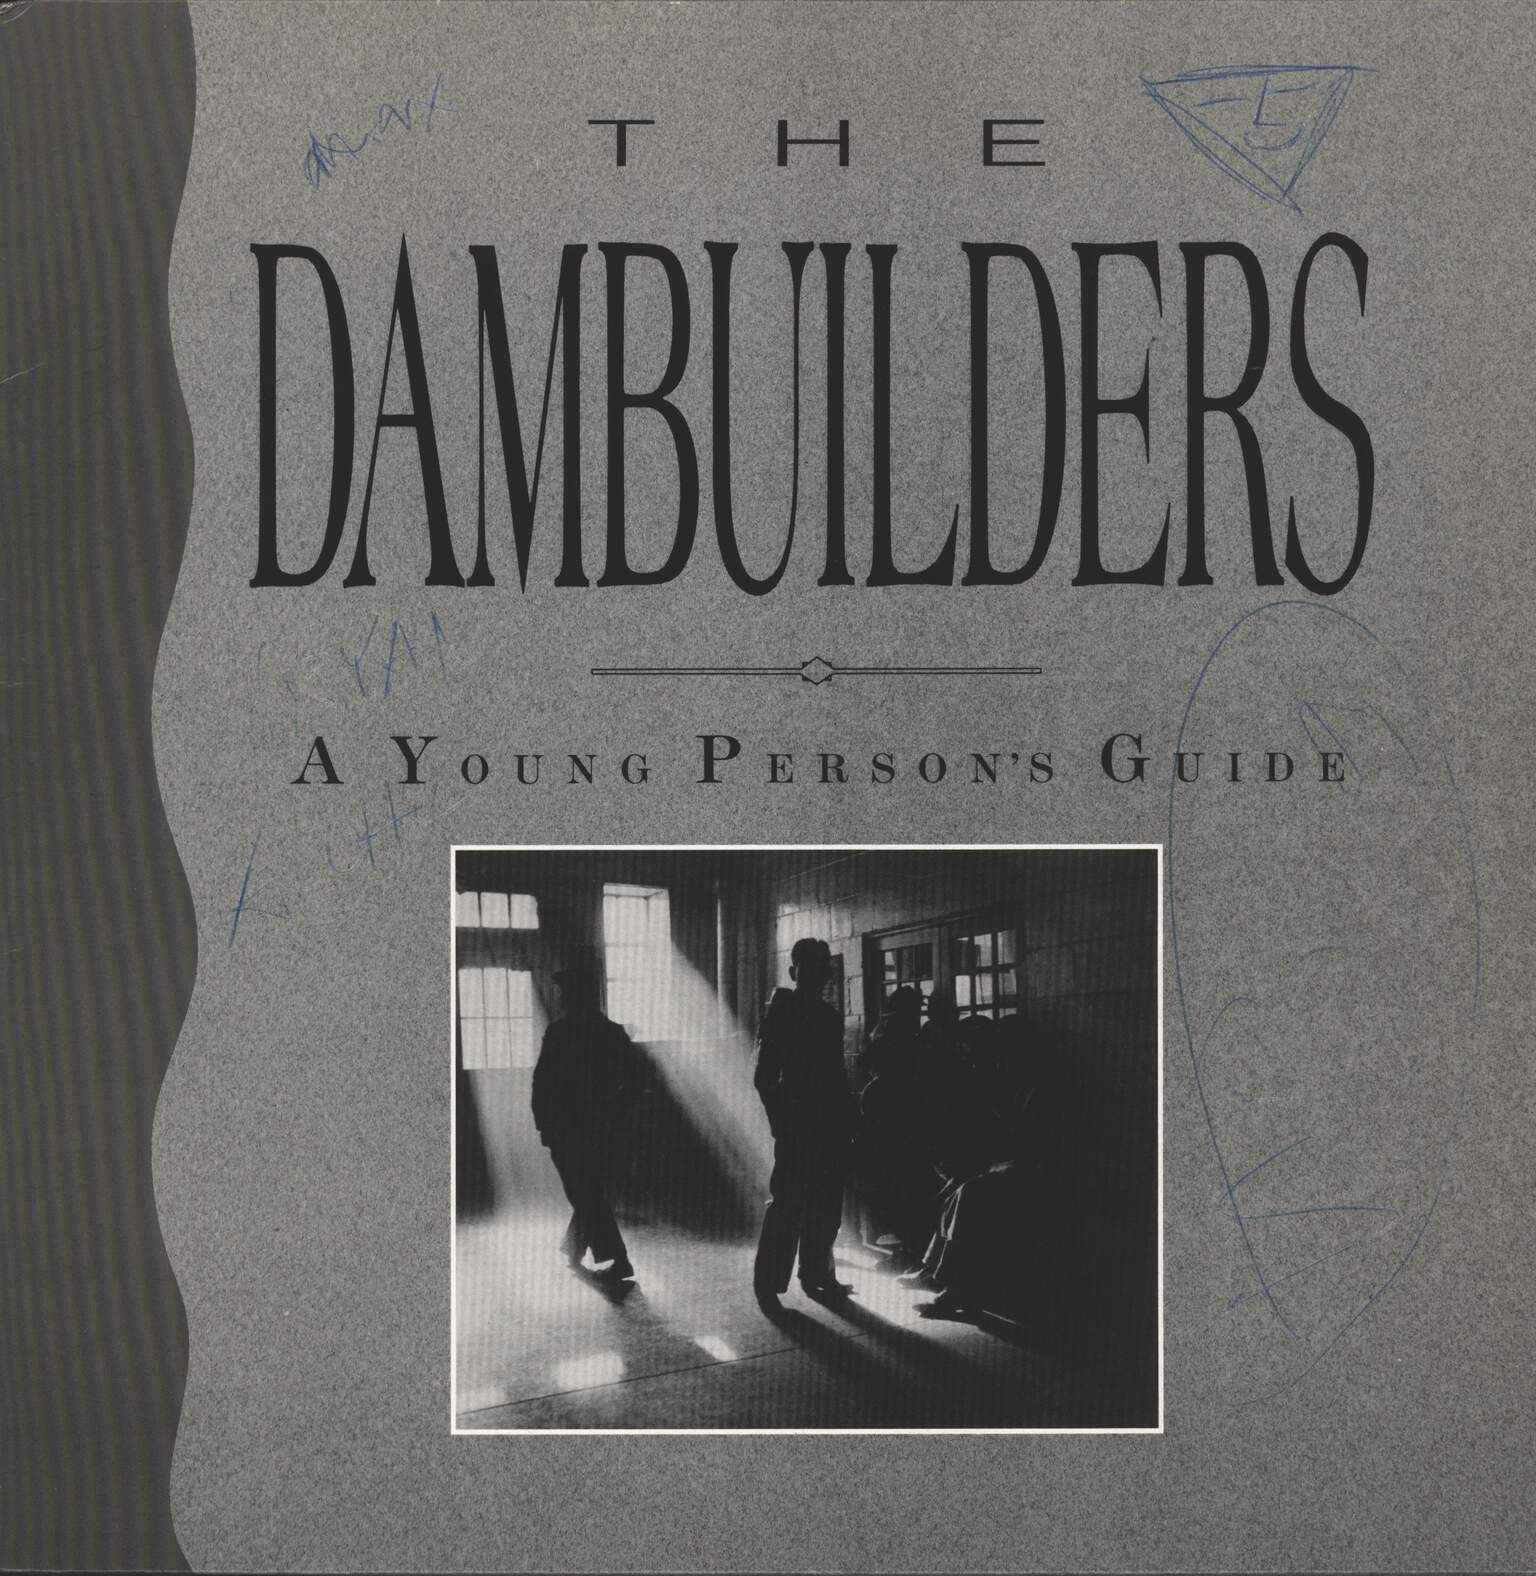 Dambuilders: A Young Person's Guide, LP (Vinyl)